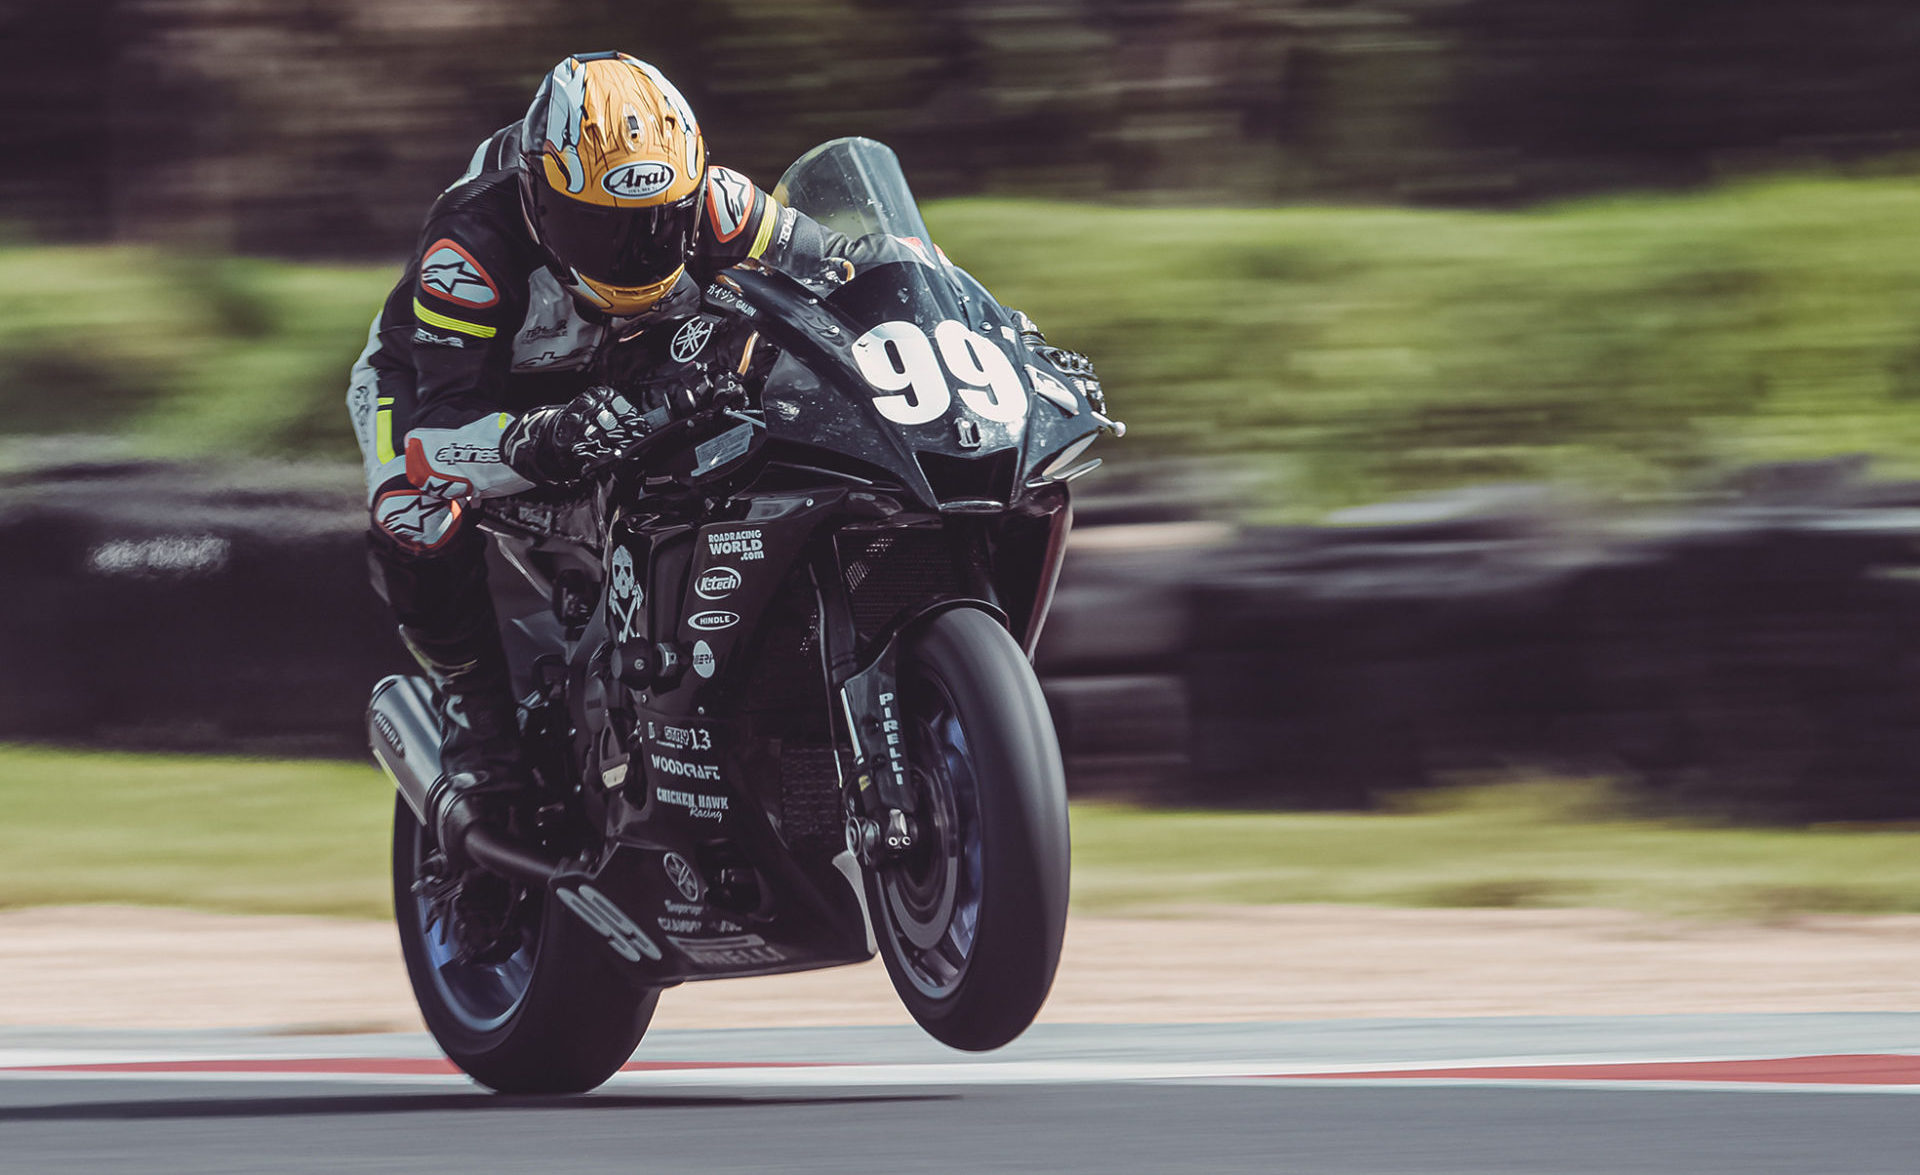 Army of Darkness (99) won the overall 2021 N2/WERA National Endurance Championship. Photo by Vae Veng – Noiseless Productions, courtesy N2 Racing.